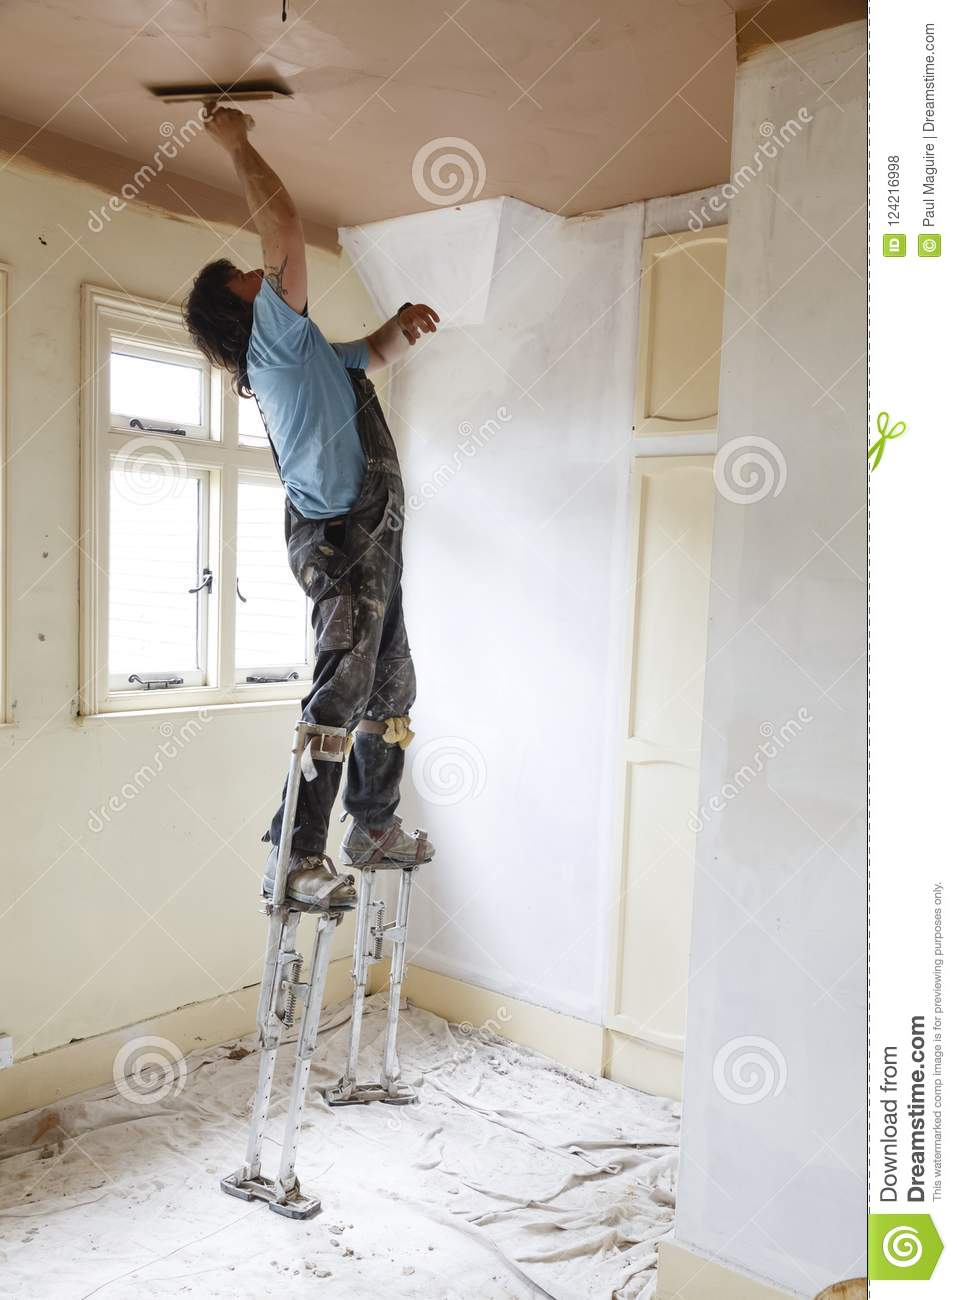 buckingham-uk-may-plasterer-skims-high-ceiling-whilst-standing-stilts-skilled-plasterer-can-work-far-more-quickly-124216998.jpg